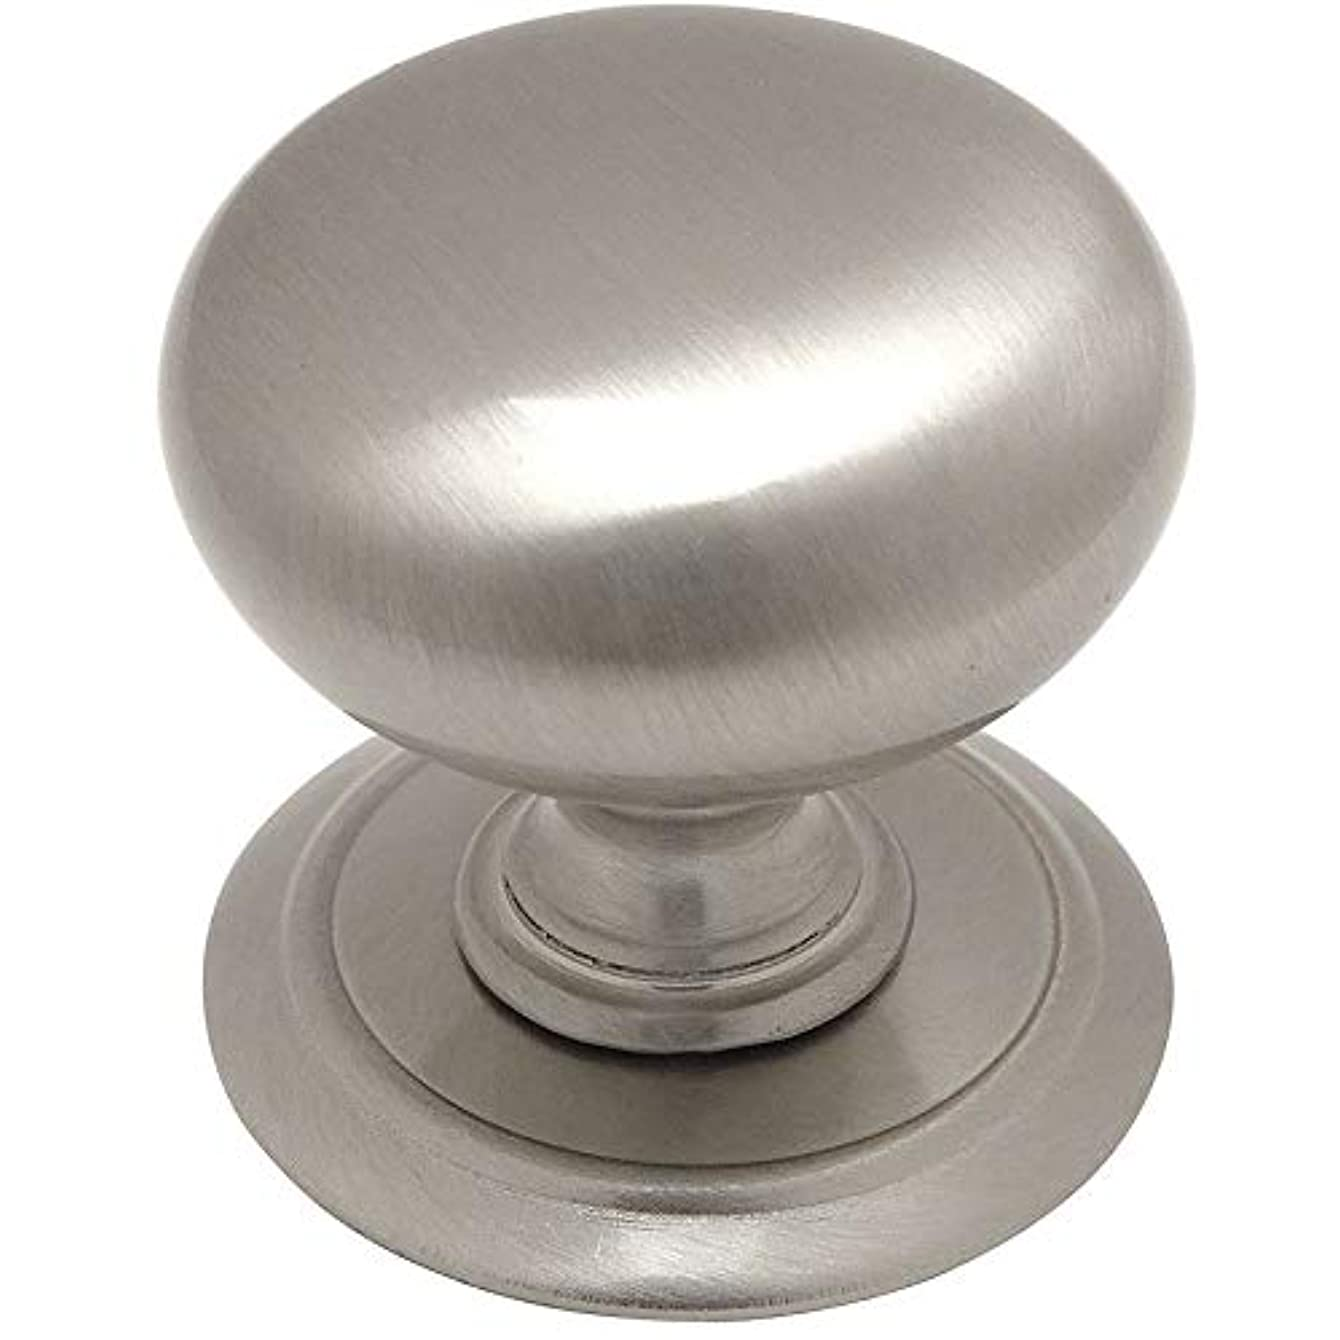 25 Pack - Cosmas 6542SN Satin Nickel Round Cabinet Hardware Knob with Backplate - 1-1/4